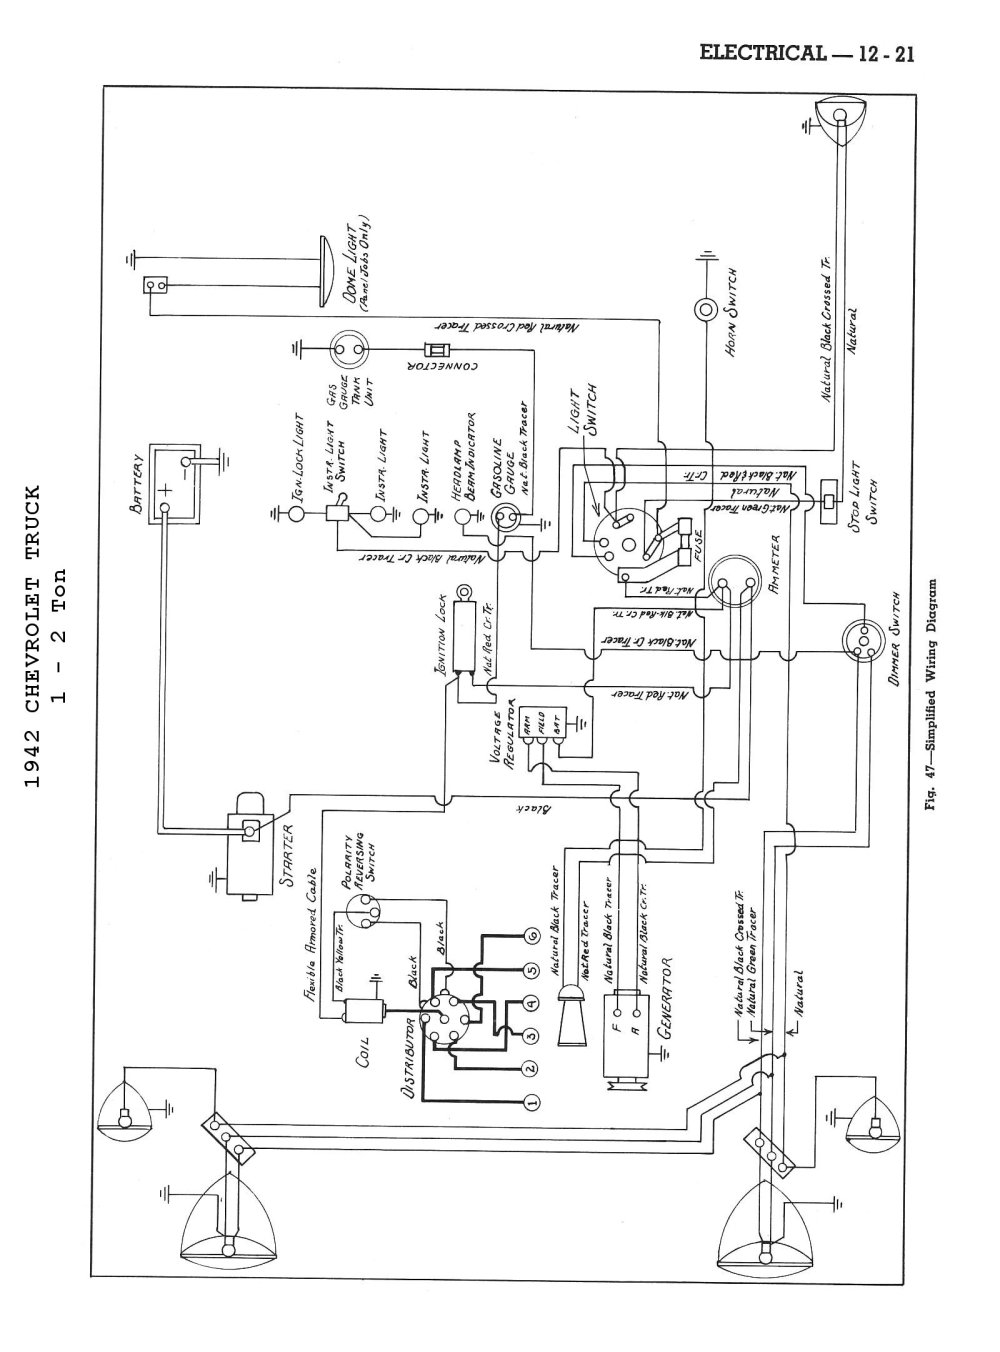 medium resolution of whirlpool dryer wiring diagram 22000ayw wiring librarychevy wiring diagrams rh chevy oldcarmanualproject com